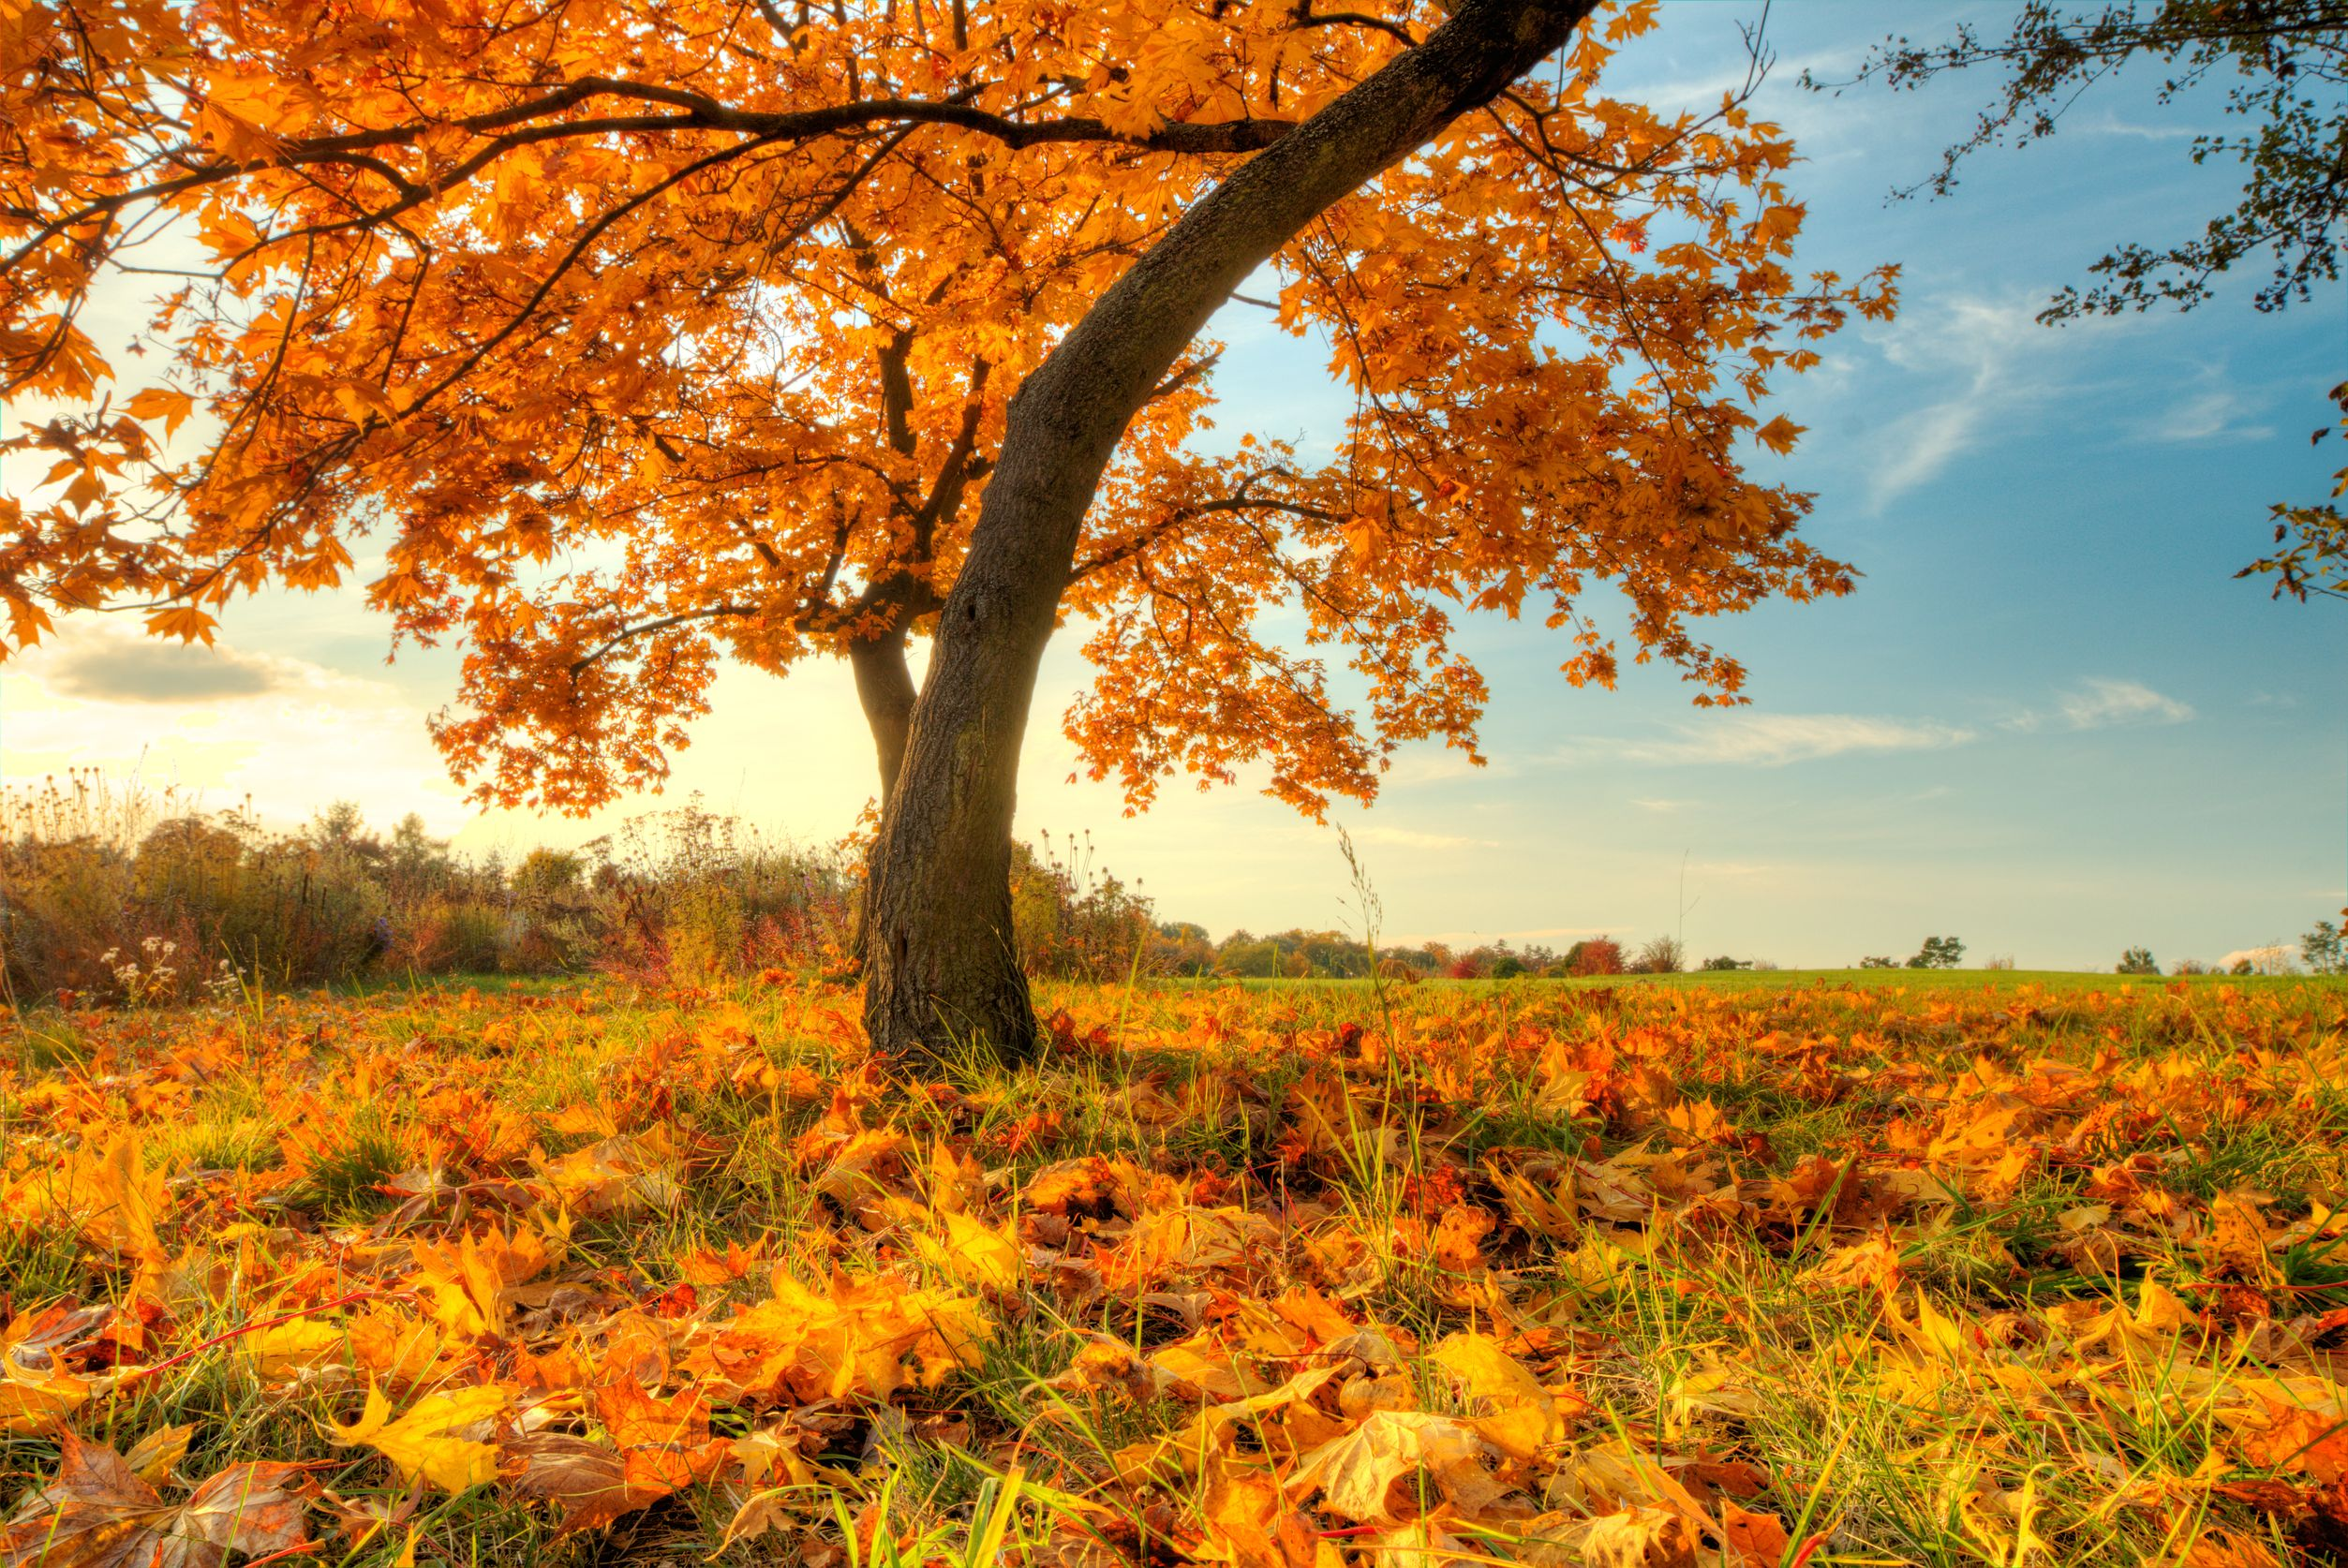 Autumn Attractions: Top Destinations for Fall